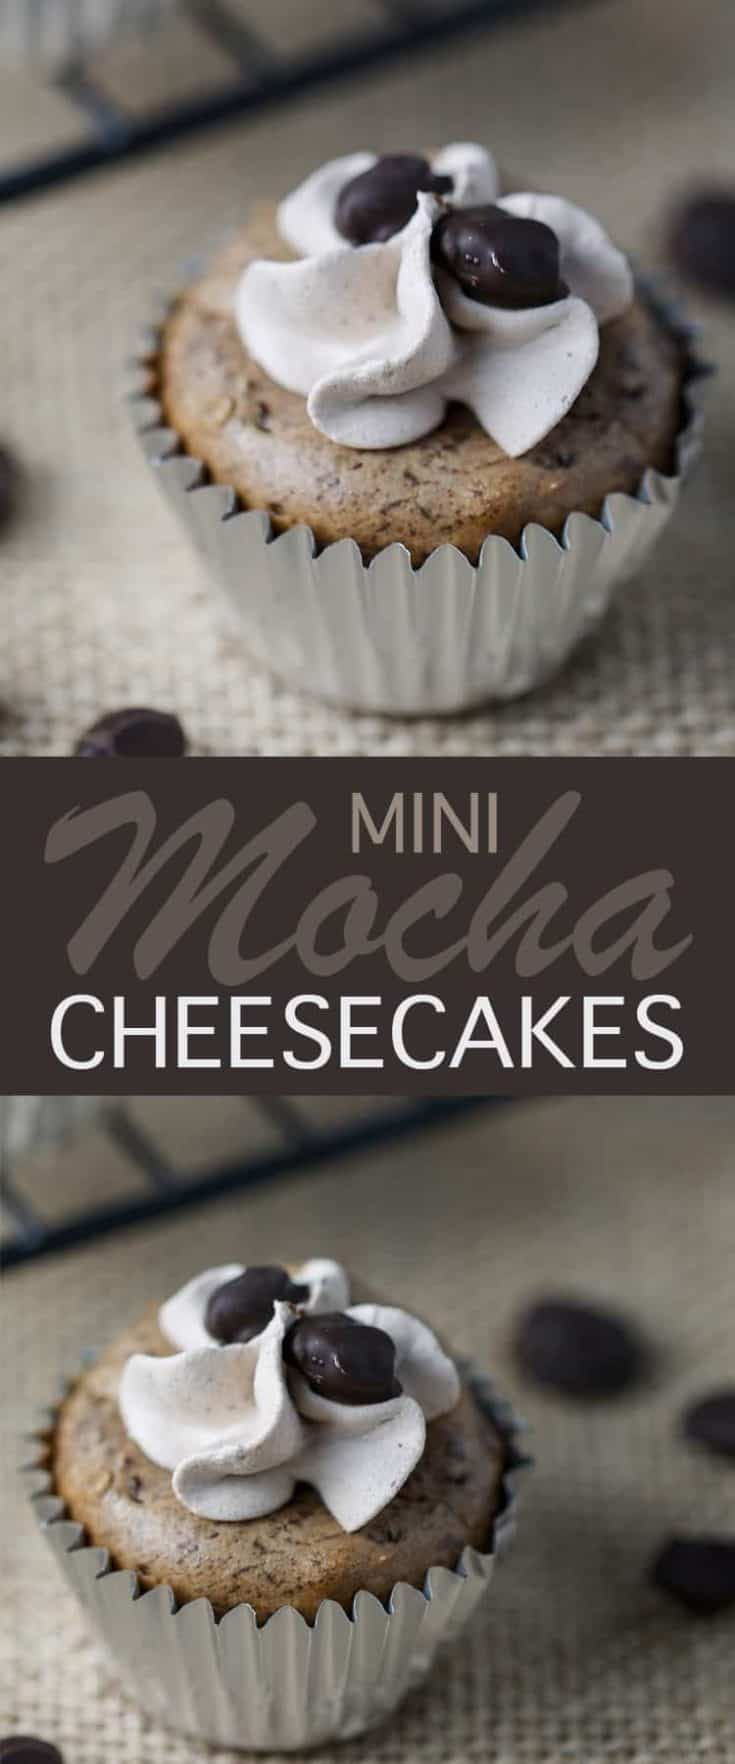 Easy to make and delicious Mini Mocha Cheesecakes recipe with chocolate coffee beans and a cool chip cocoa topping, the perfect mocha cupcake! #cheesecake #mocha #desserrecipe